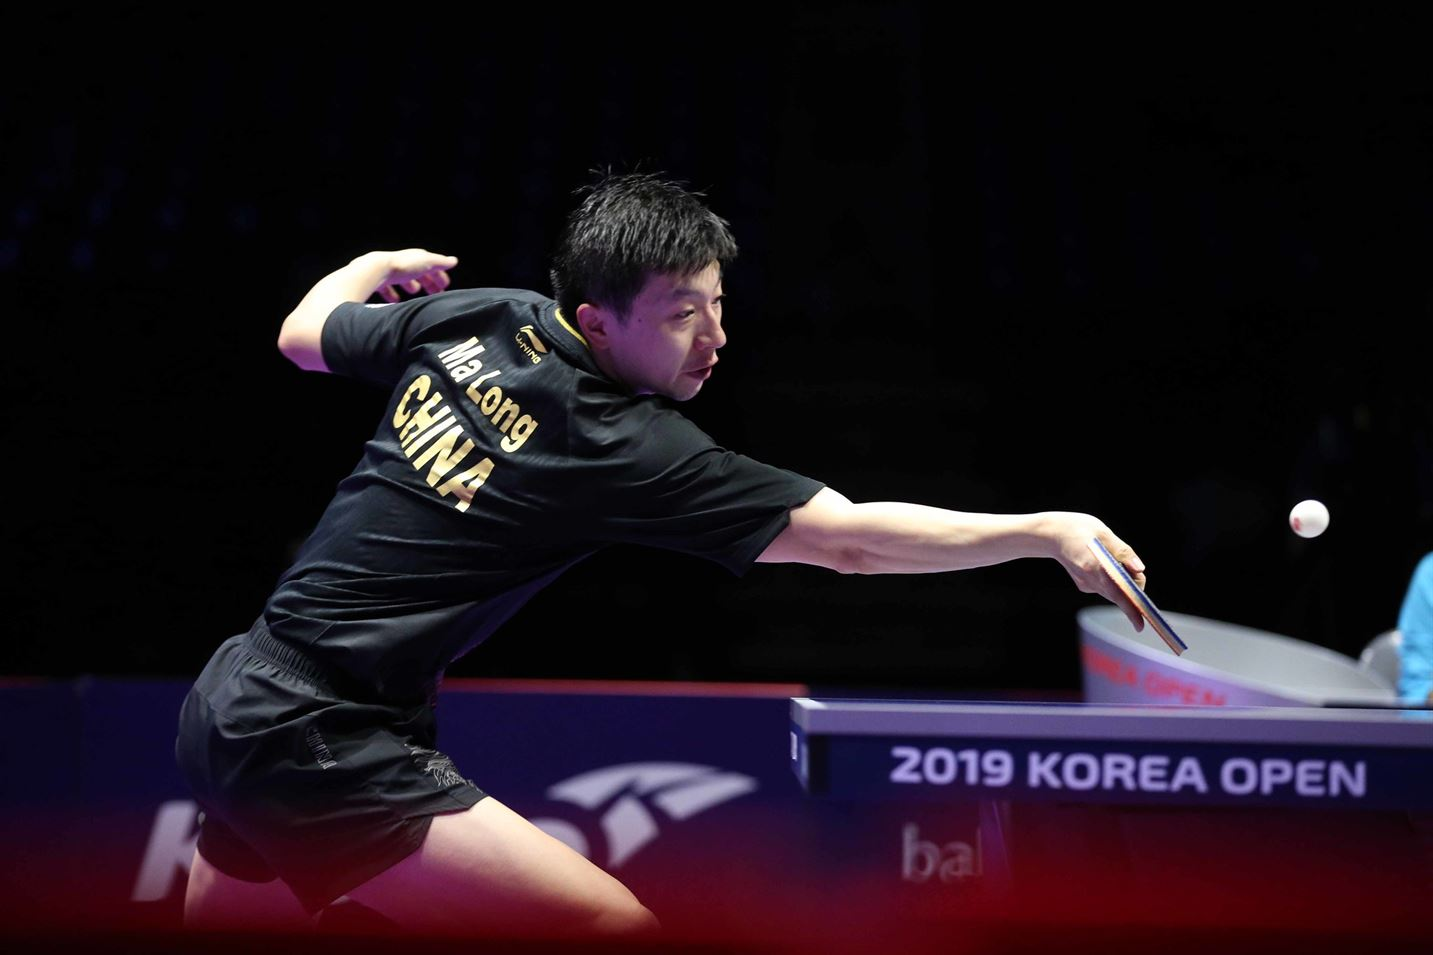 Korea Open Update: Another Final for Ma Long